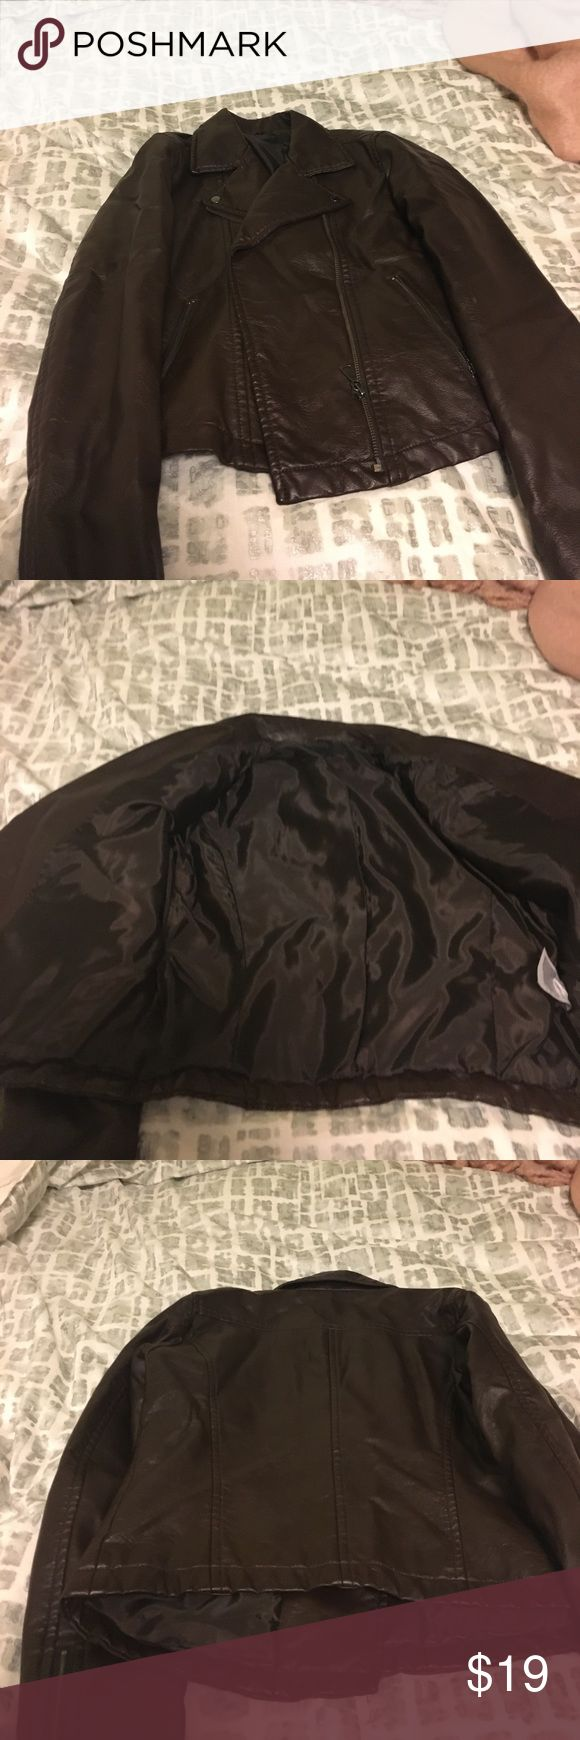 Uniqlo Vegan Leather Jacket Brown vegan leather jacket. Only worn a couple times. Uniqlo Jackets & Coats